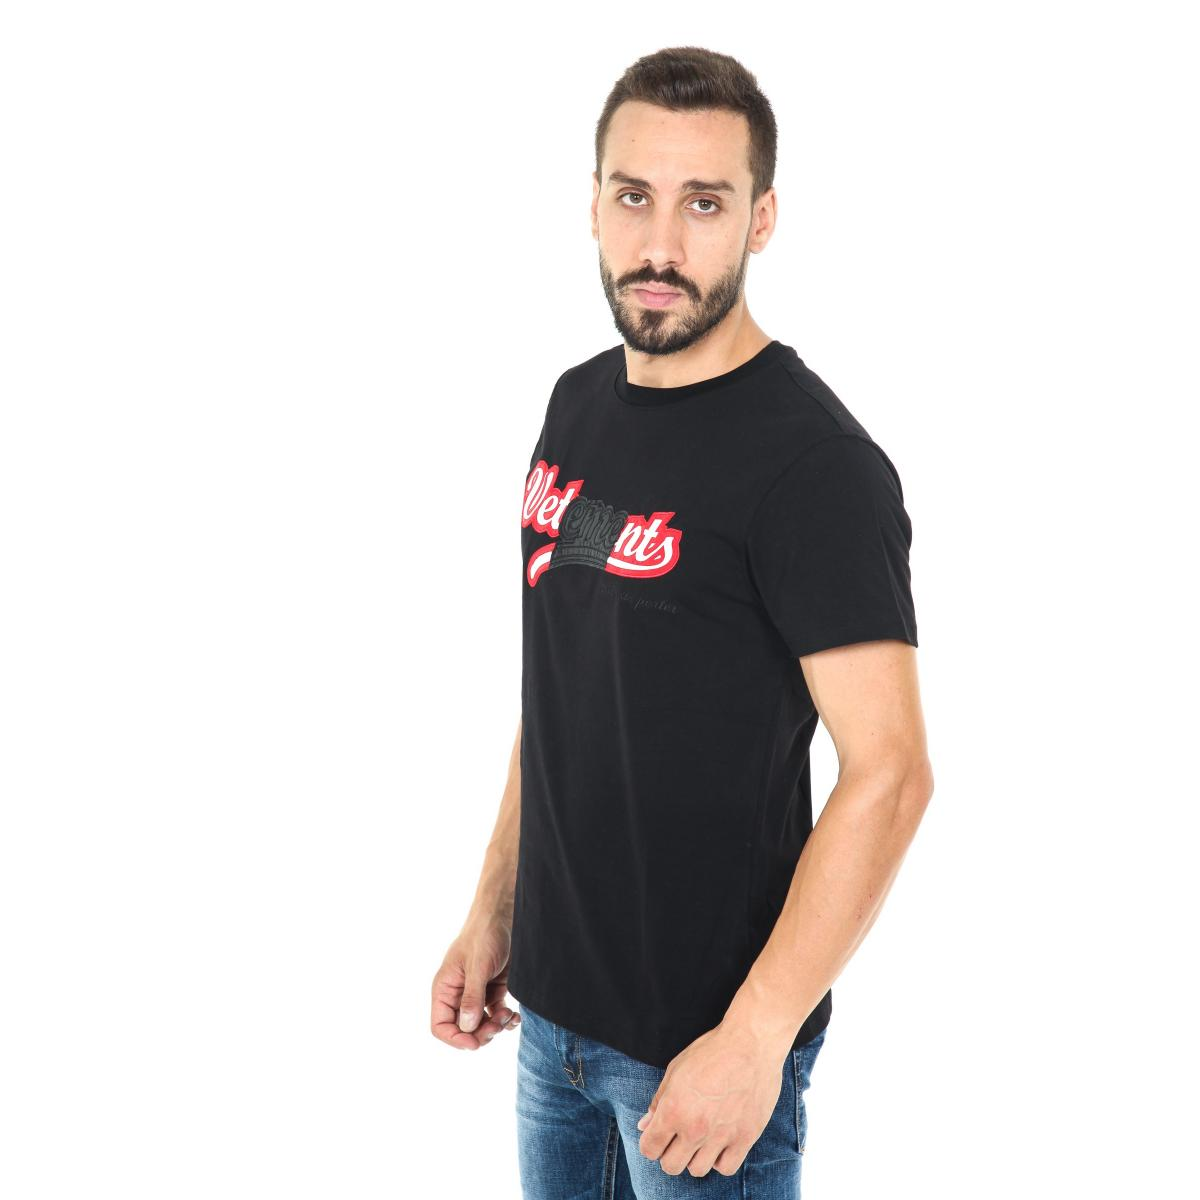 Tshirt girocollo uomo Vetements